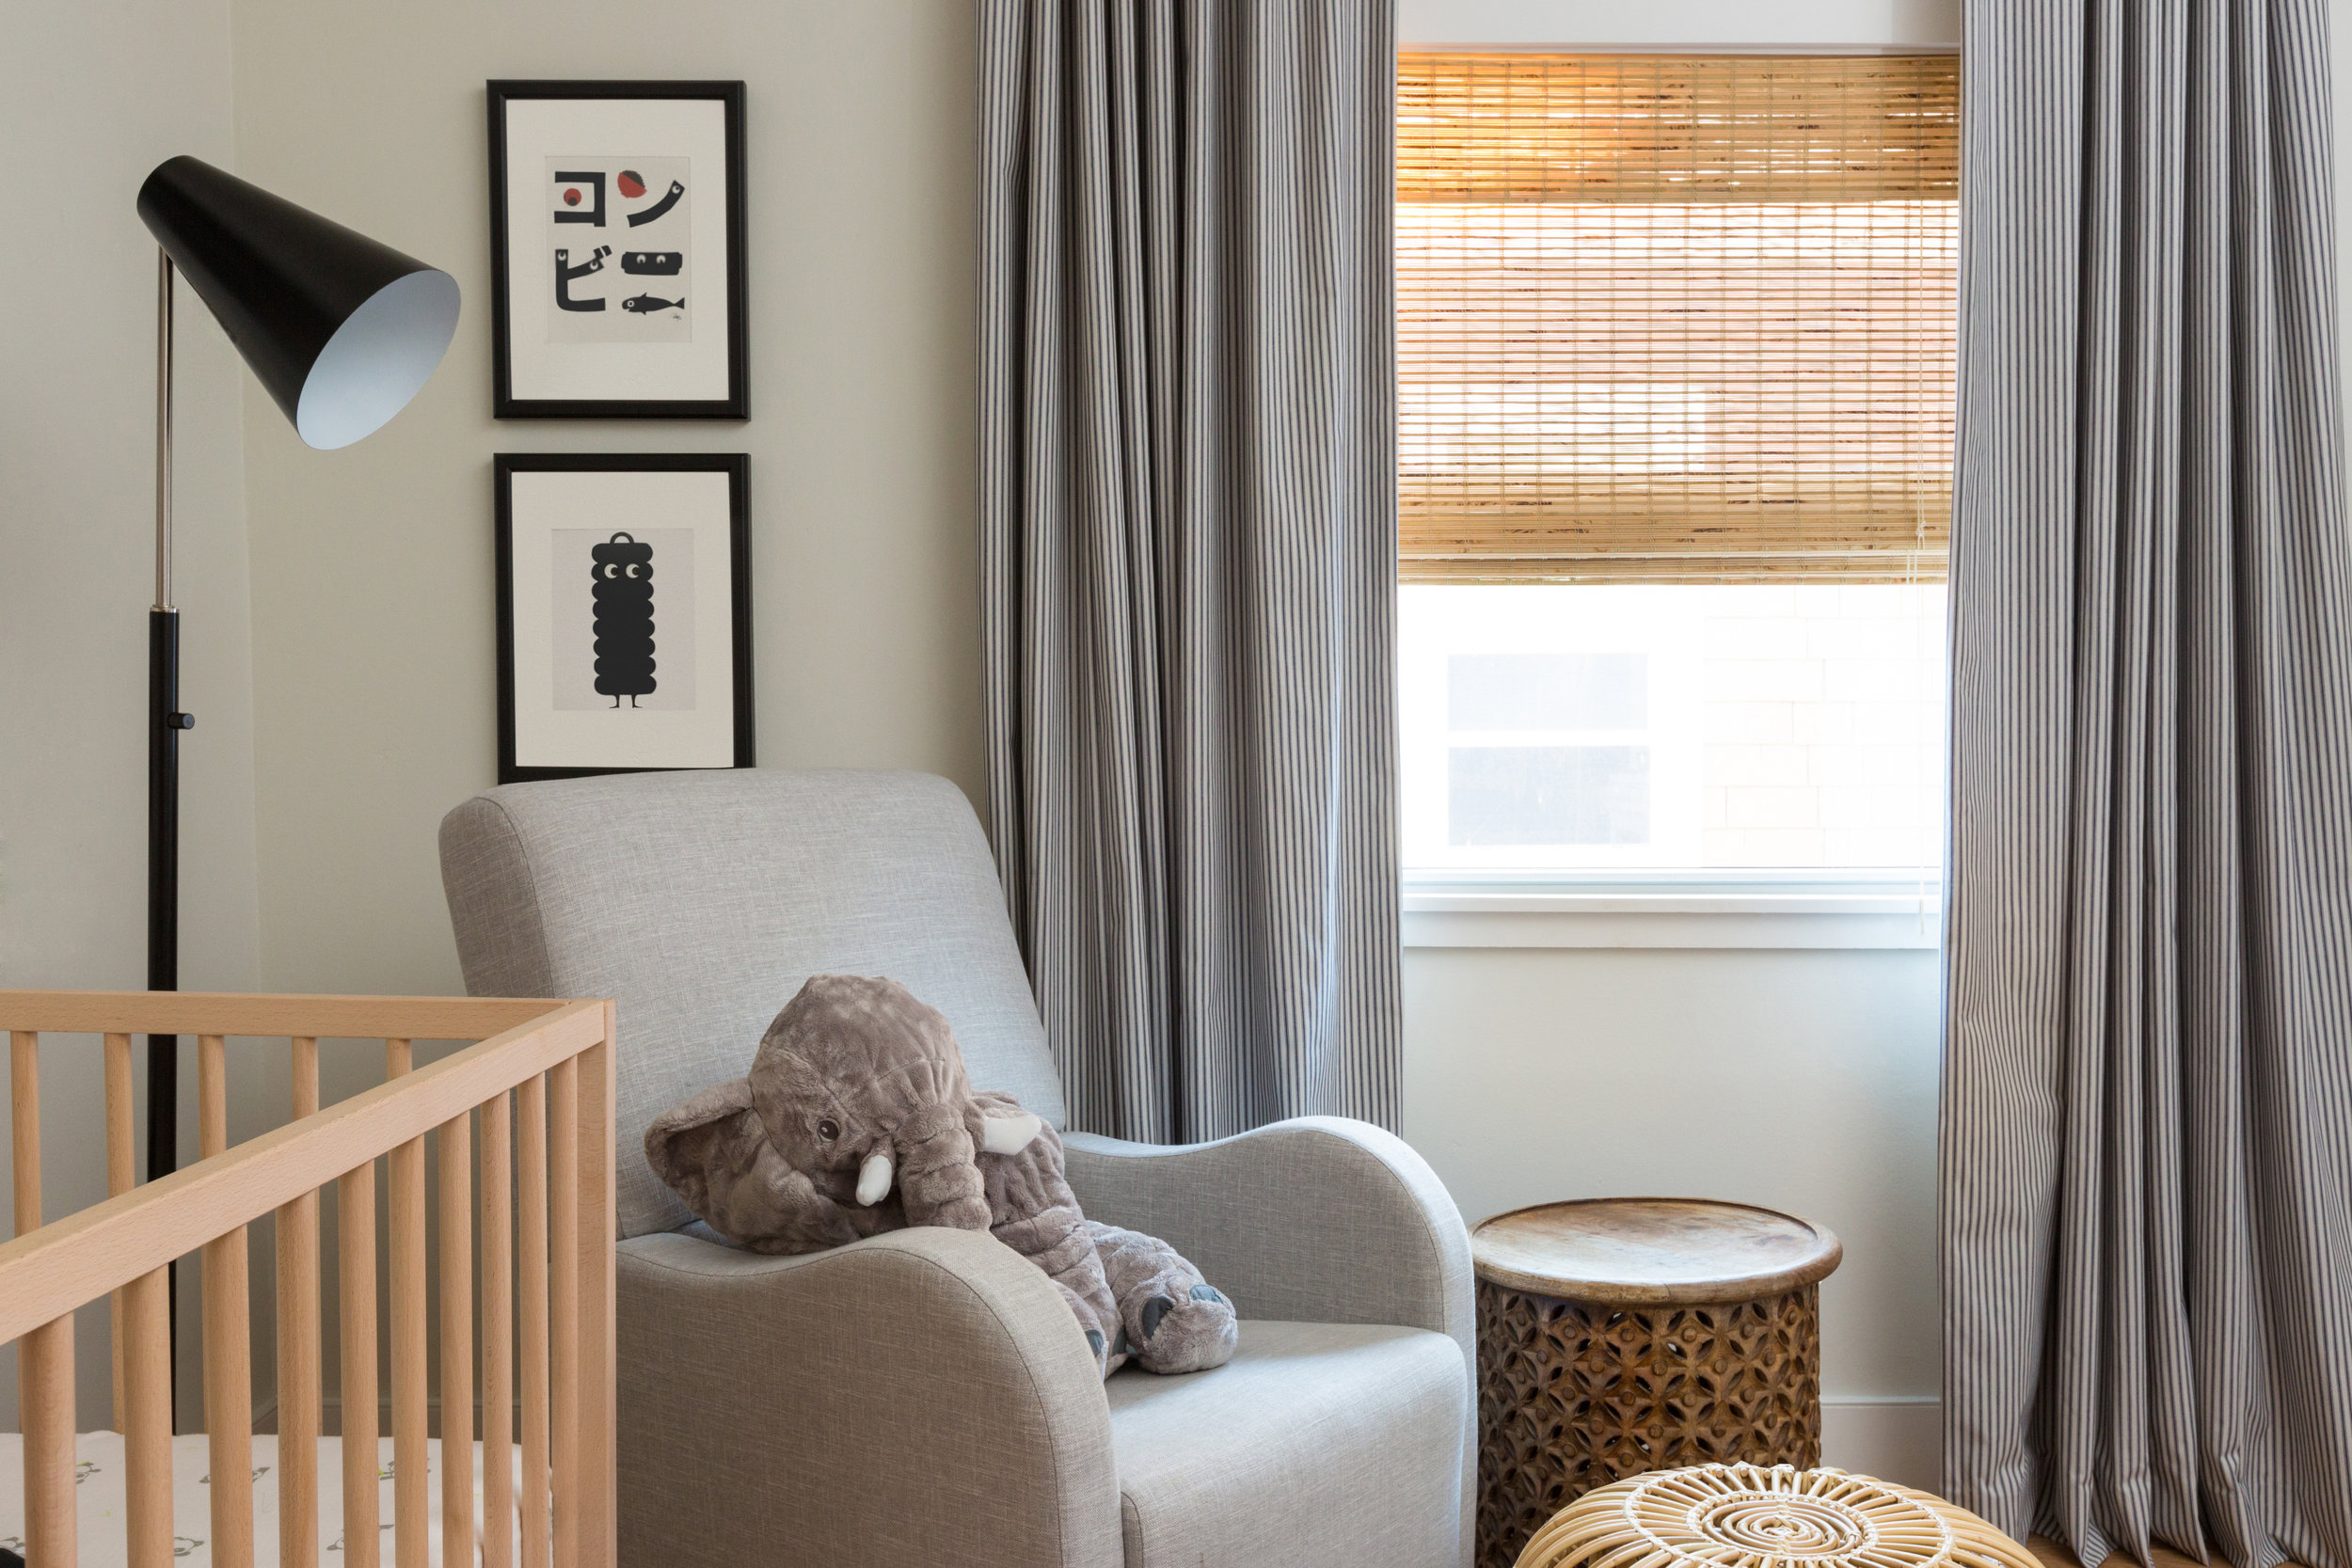 10.Slideshow_LKL-Market_Nursery 2x3_Photography by Lauren Andersen.jpg